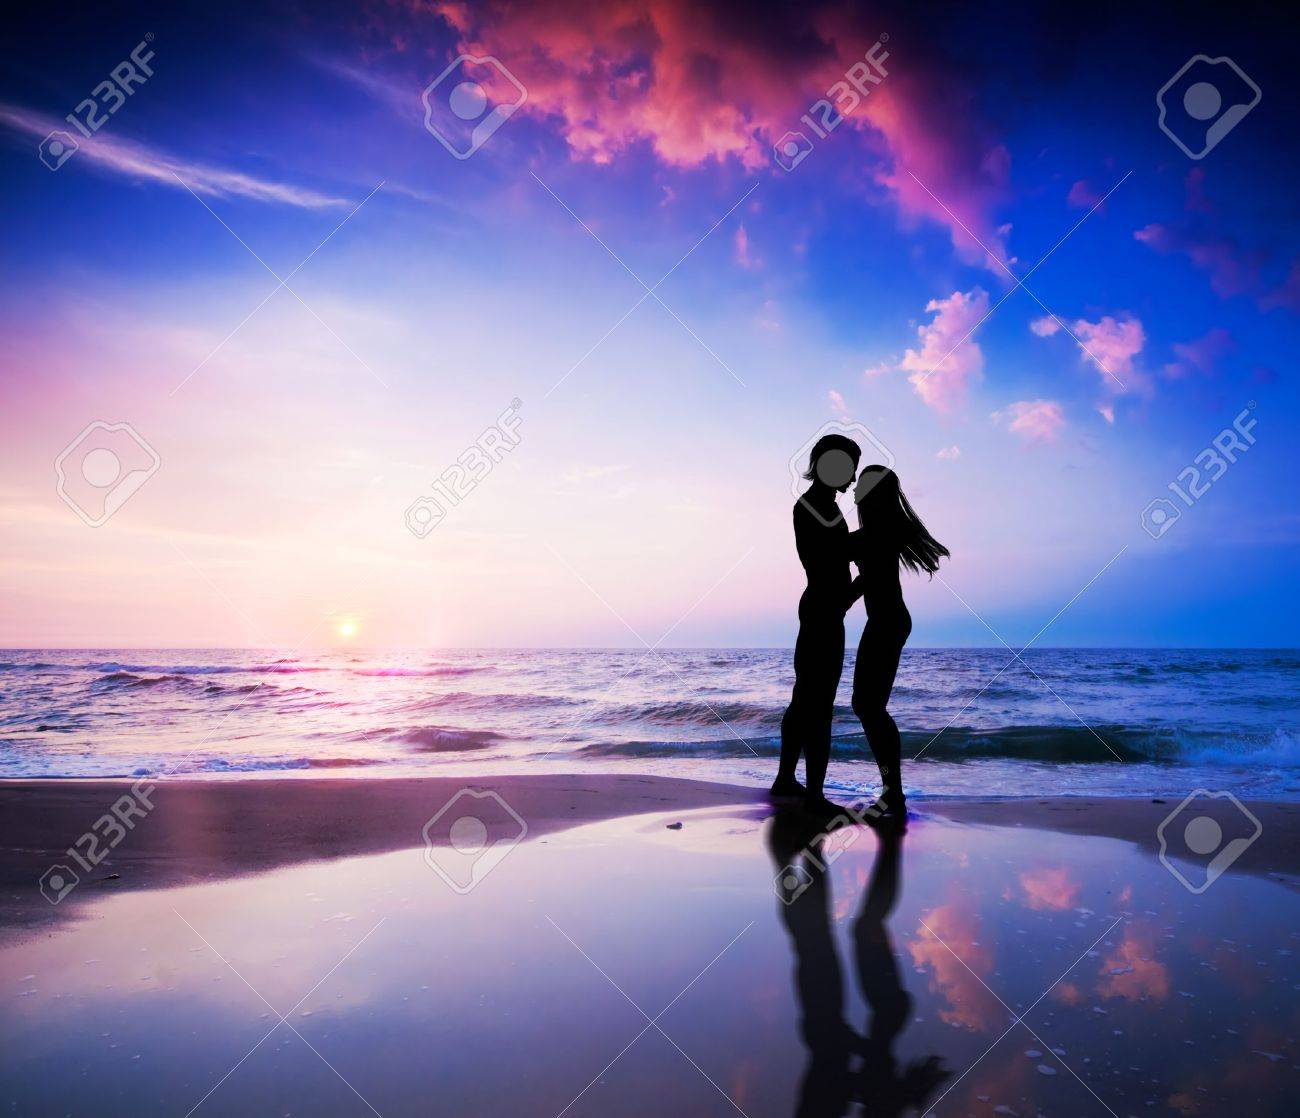 Romantic couple about to kiss on beach at sunset - 12504732